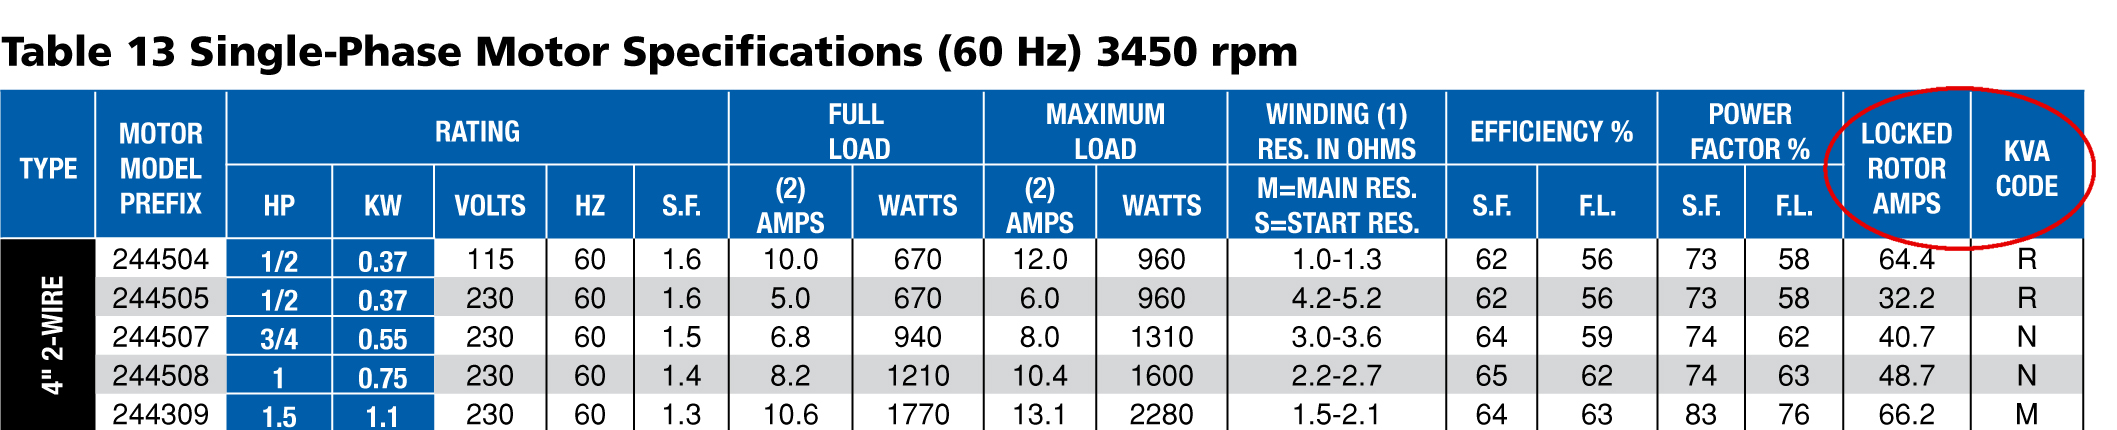 Explosion Proof Brushless Servo Motors From Kollmorgen further Column By Column Locked Rotor  s And Kva besides parison Between 1 Phase And 3 Phase moreover Nec Torque Table as well 74182 Jetting. on motor starter size chart